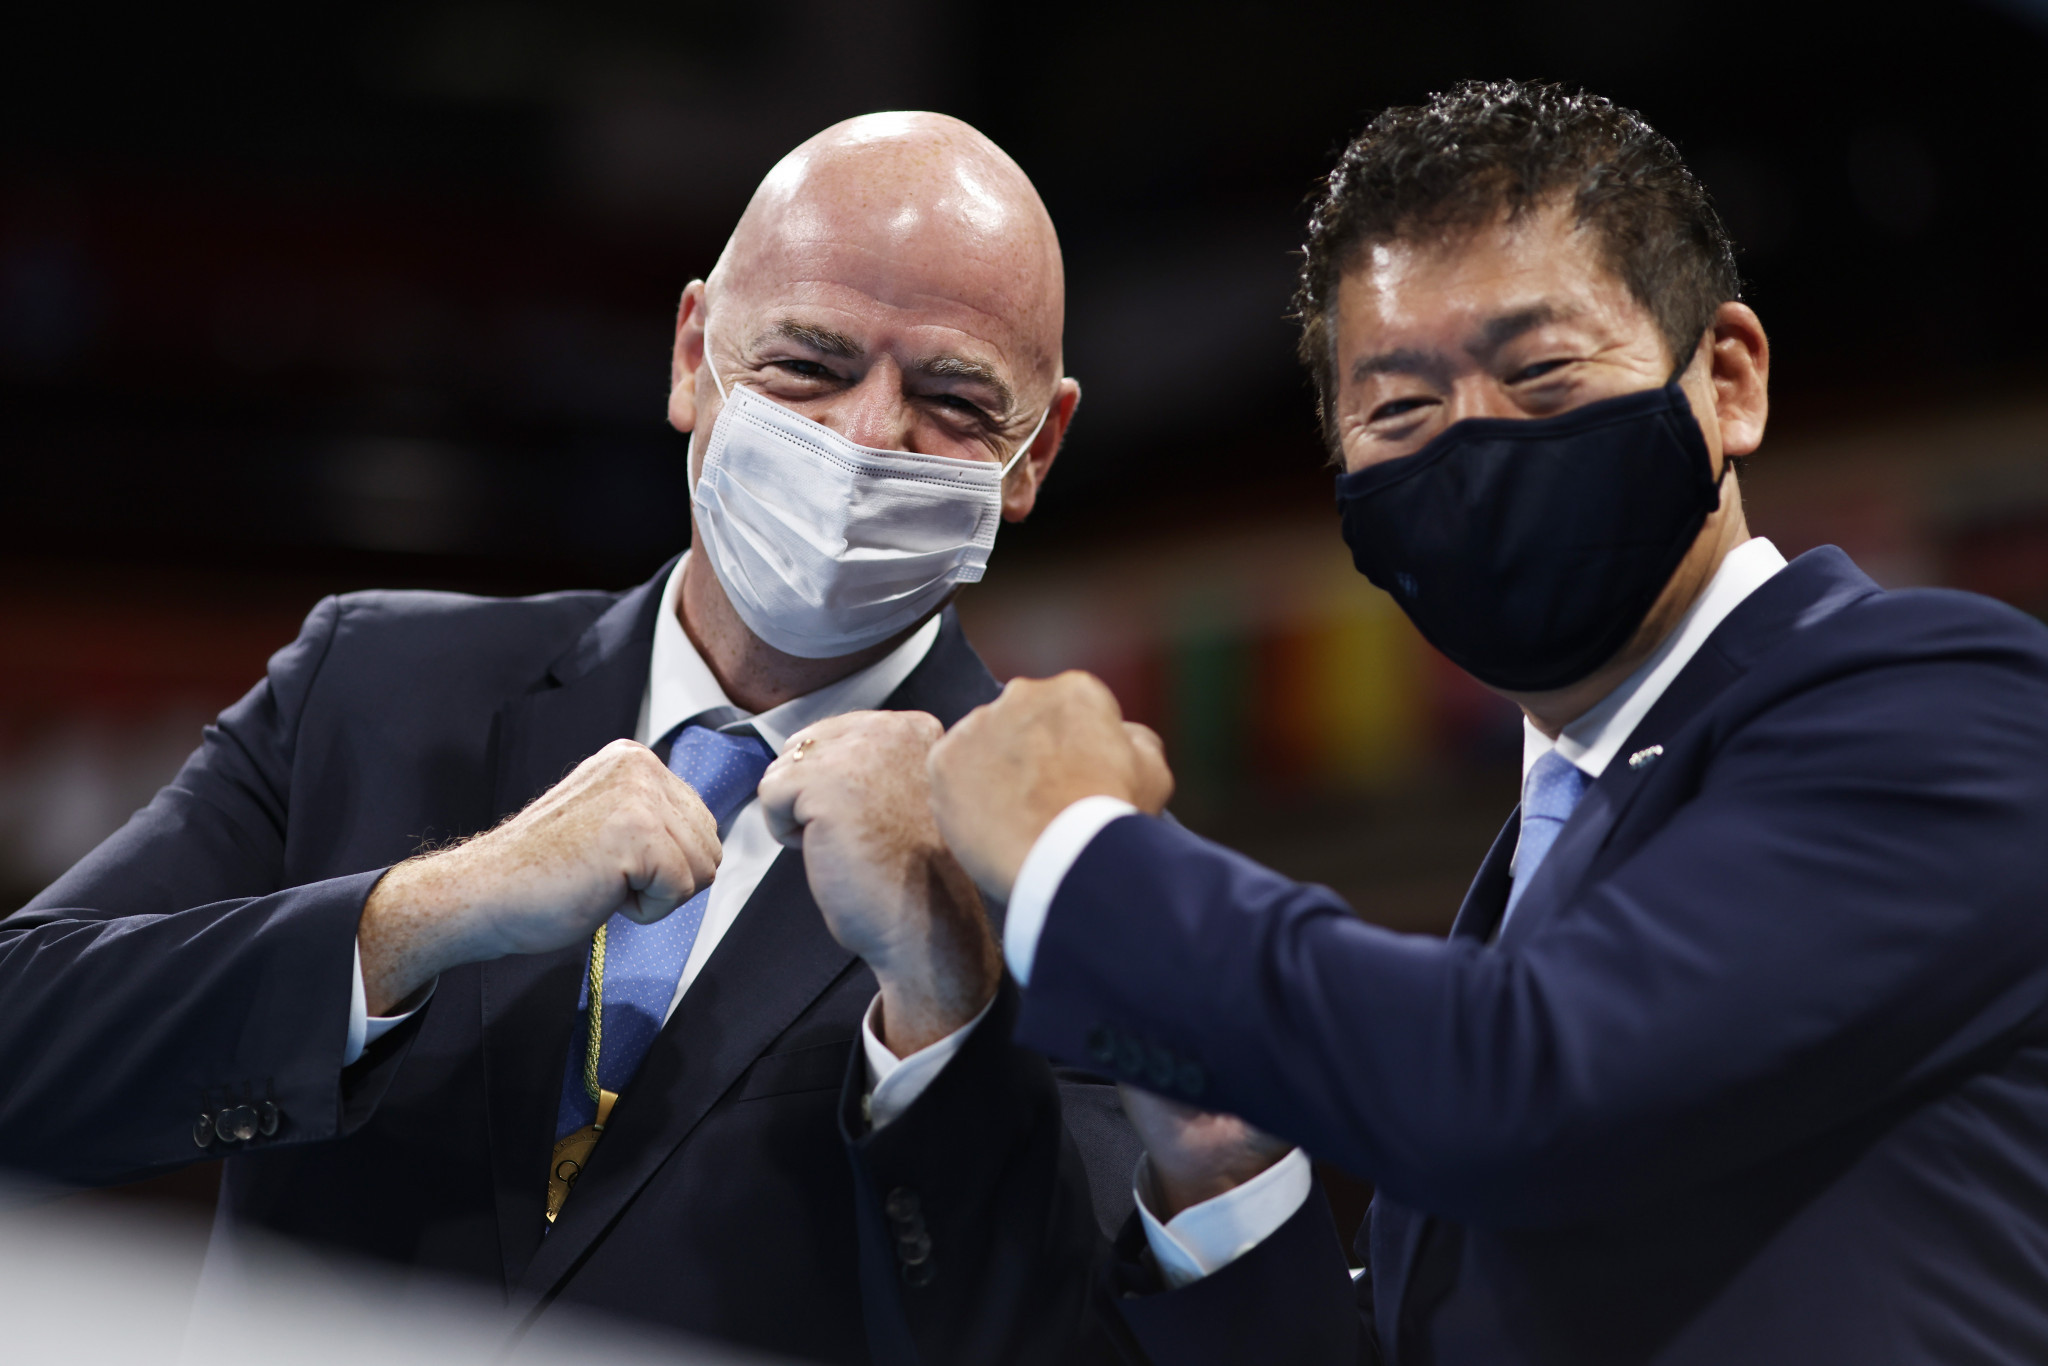 FIFA President Gianni Infantino, left, is an IOC member and attended the Tokyo 2020 Olympics ©Getty Images